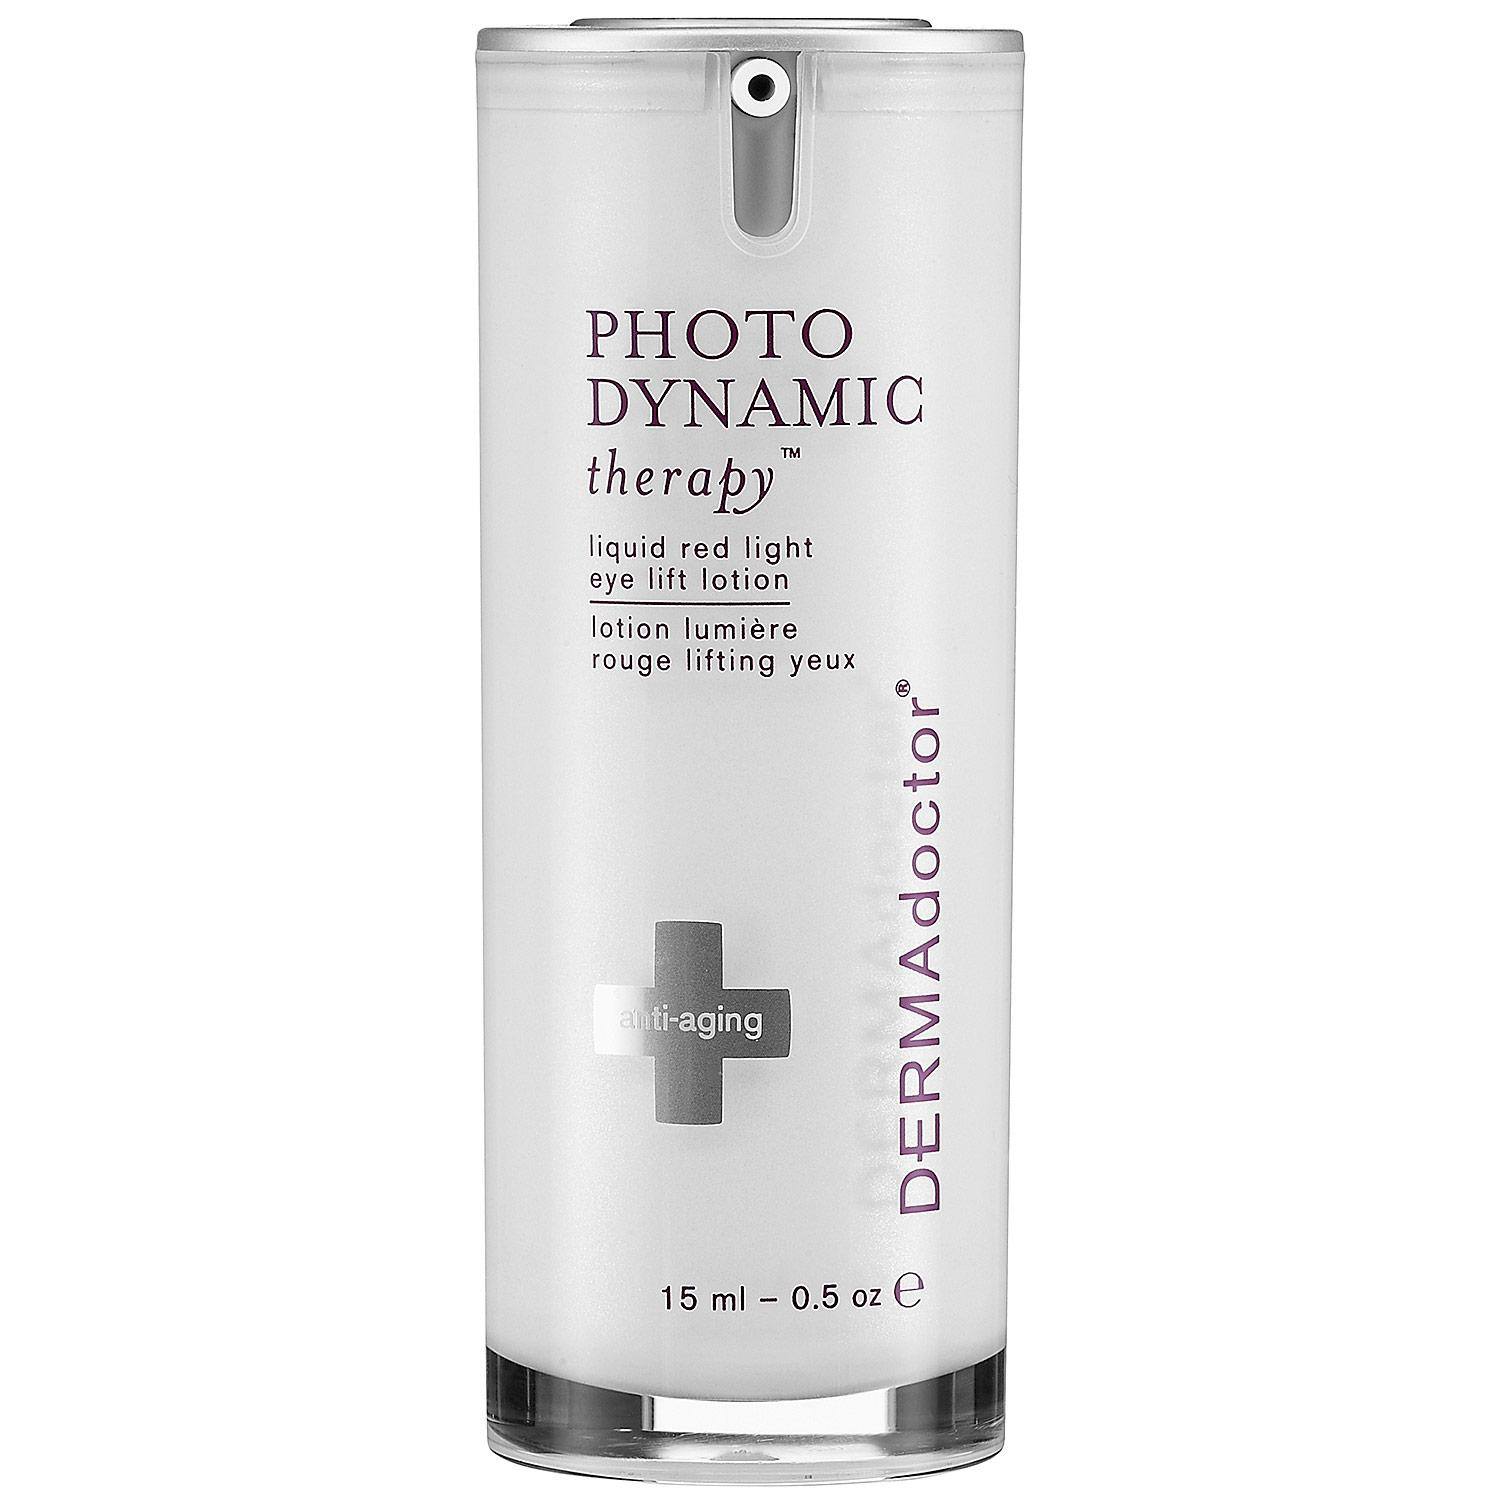 Photo Dynamic Therapy™ Liquid Red Light Eye Lift Lotion